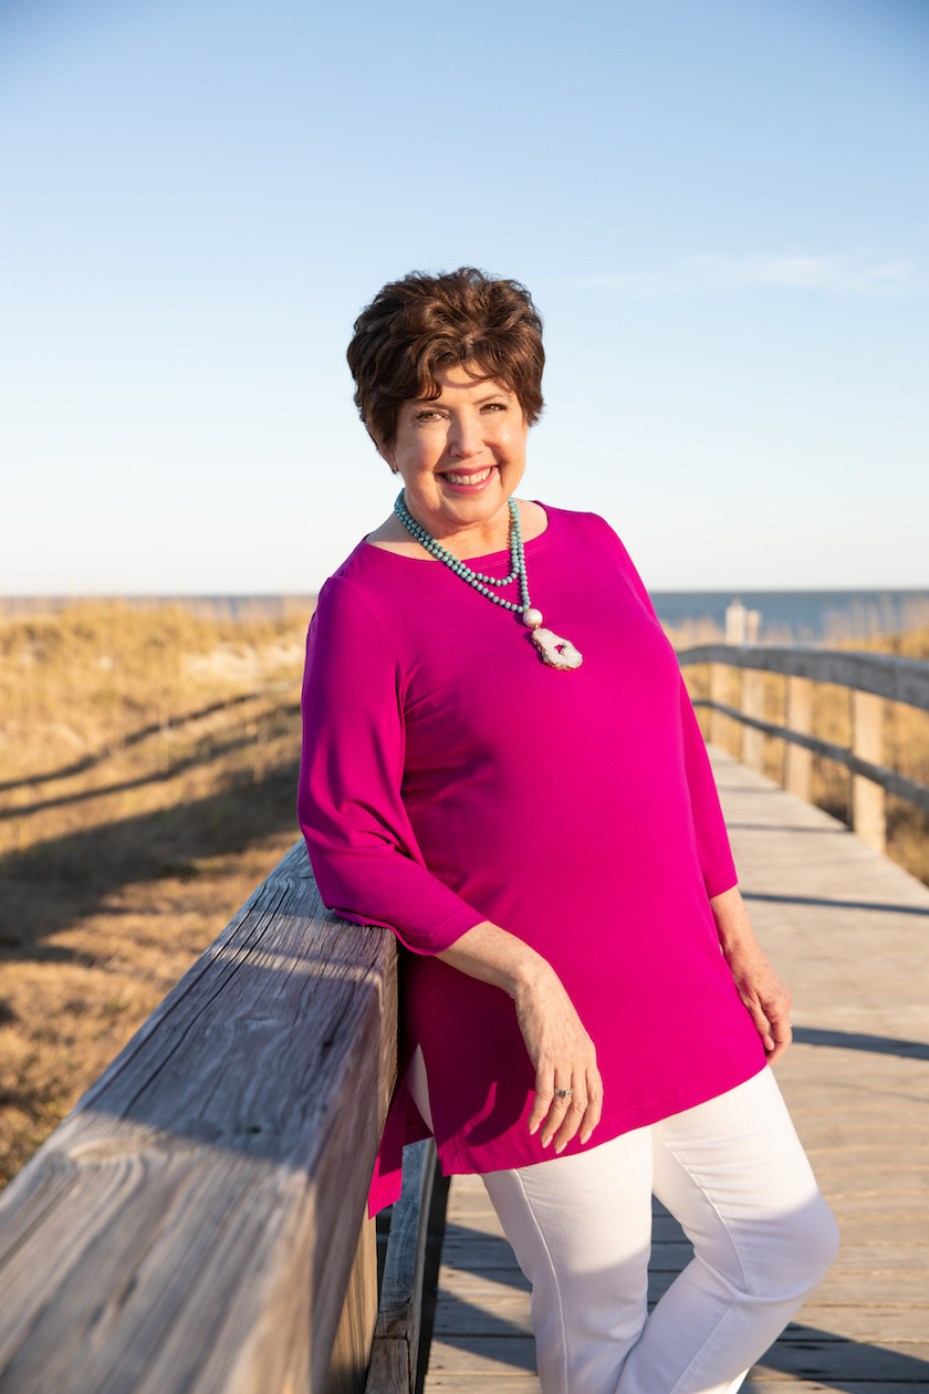 A woman in a pink blouse and white pants and large necklace standing on a boardwalk on a beach in the sunshine, smiling at the camera.